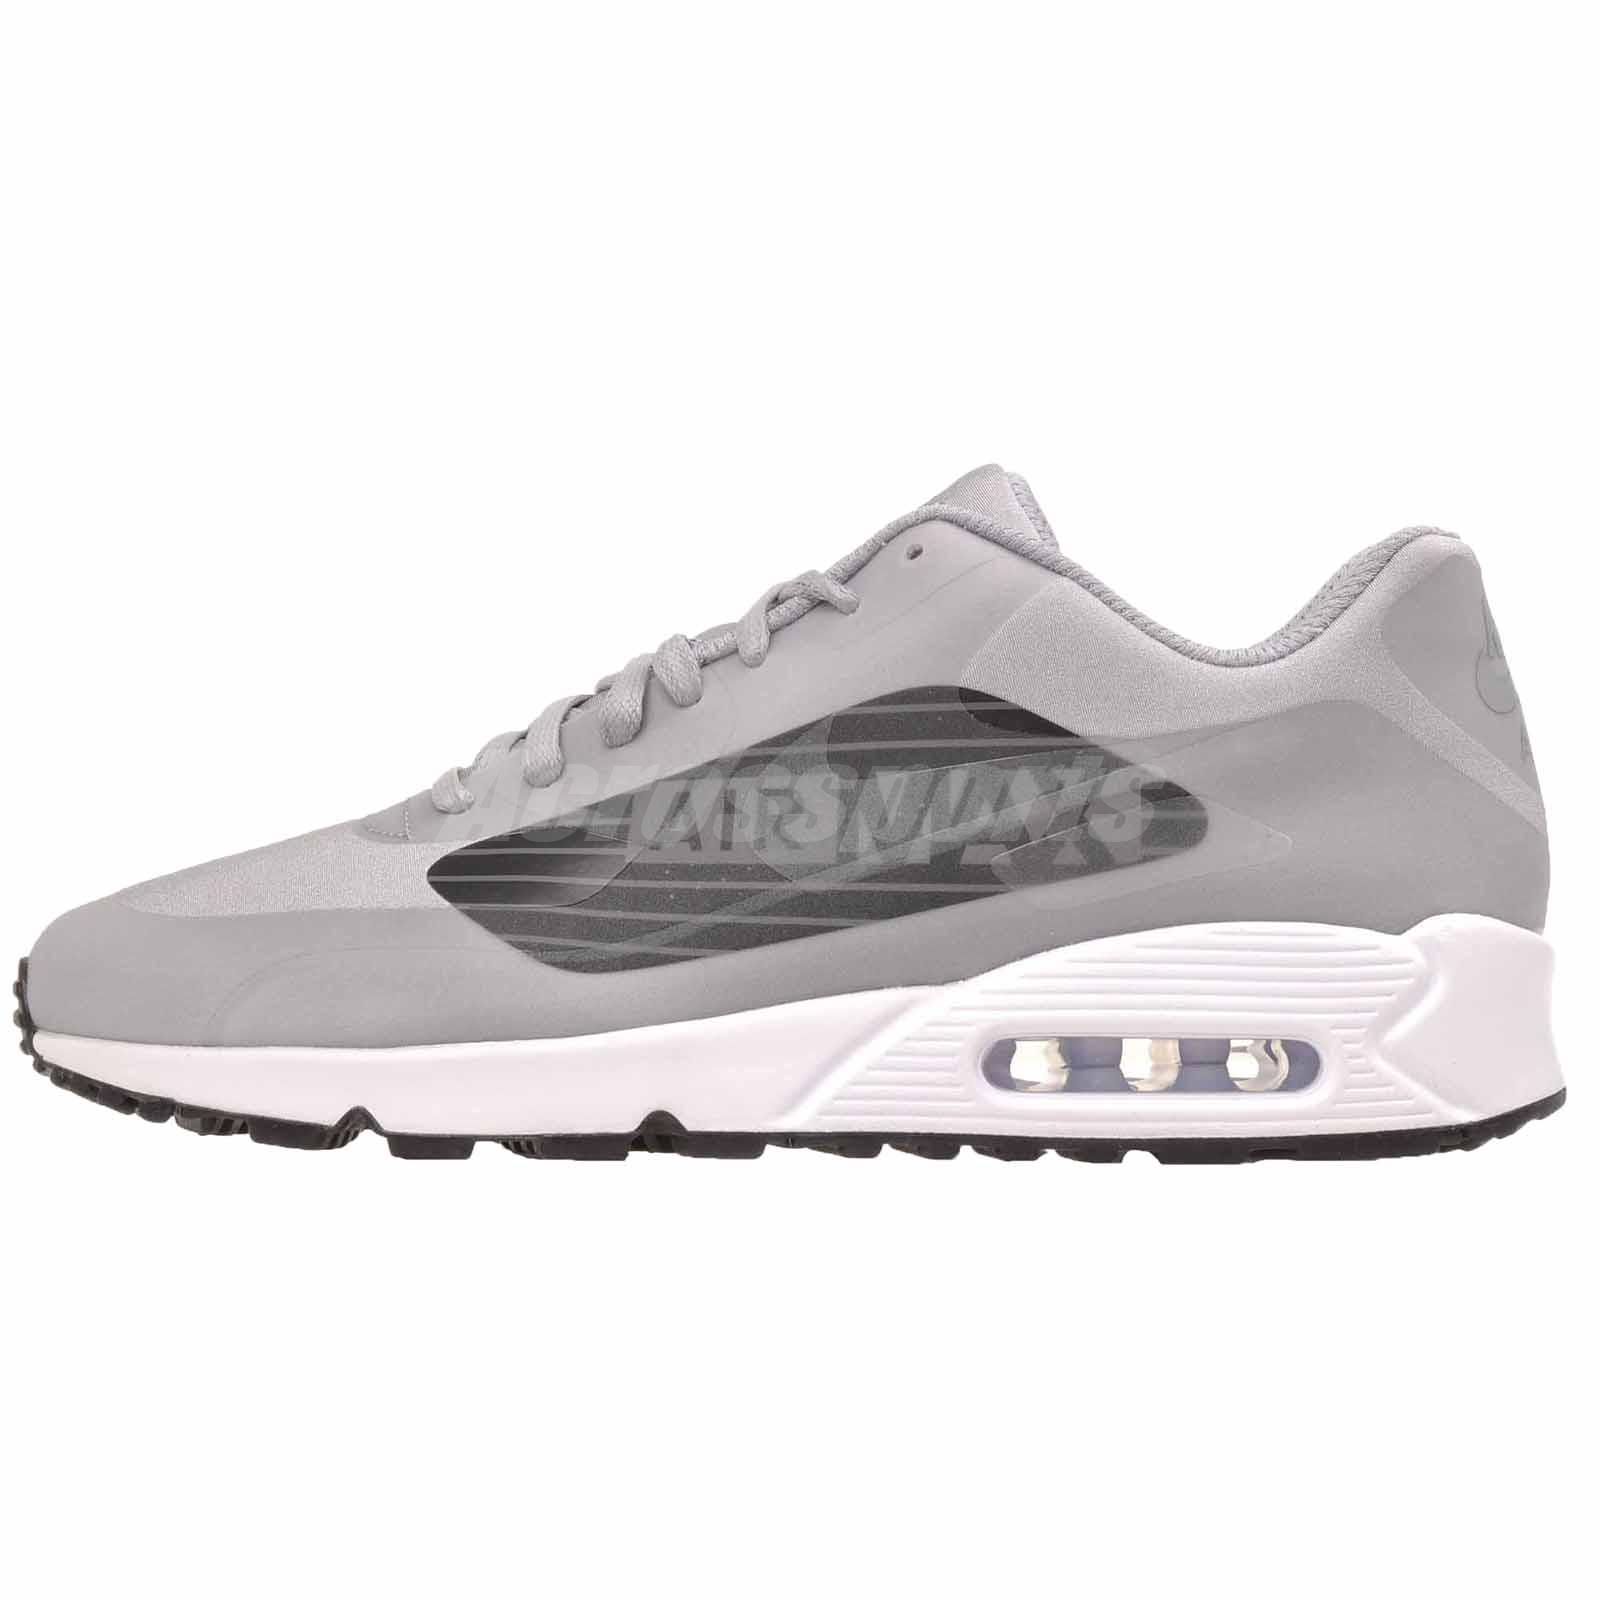 size 40 0efae e8d28 Details about Nike Air Max 90 NS GPX Running Mens Shoes Wolf Grey AJ7182-004